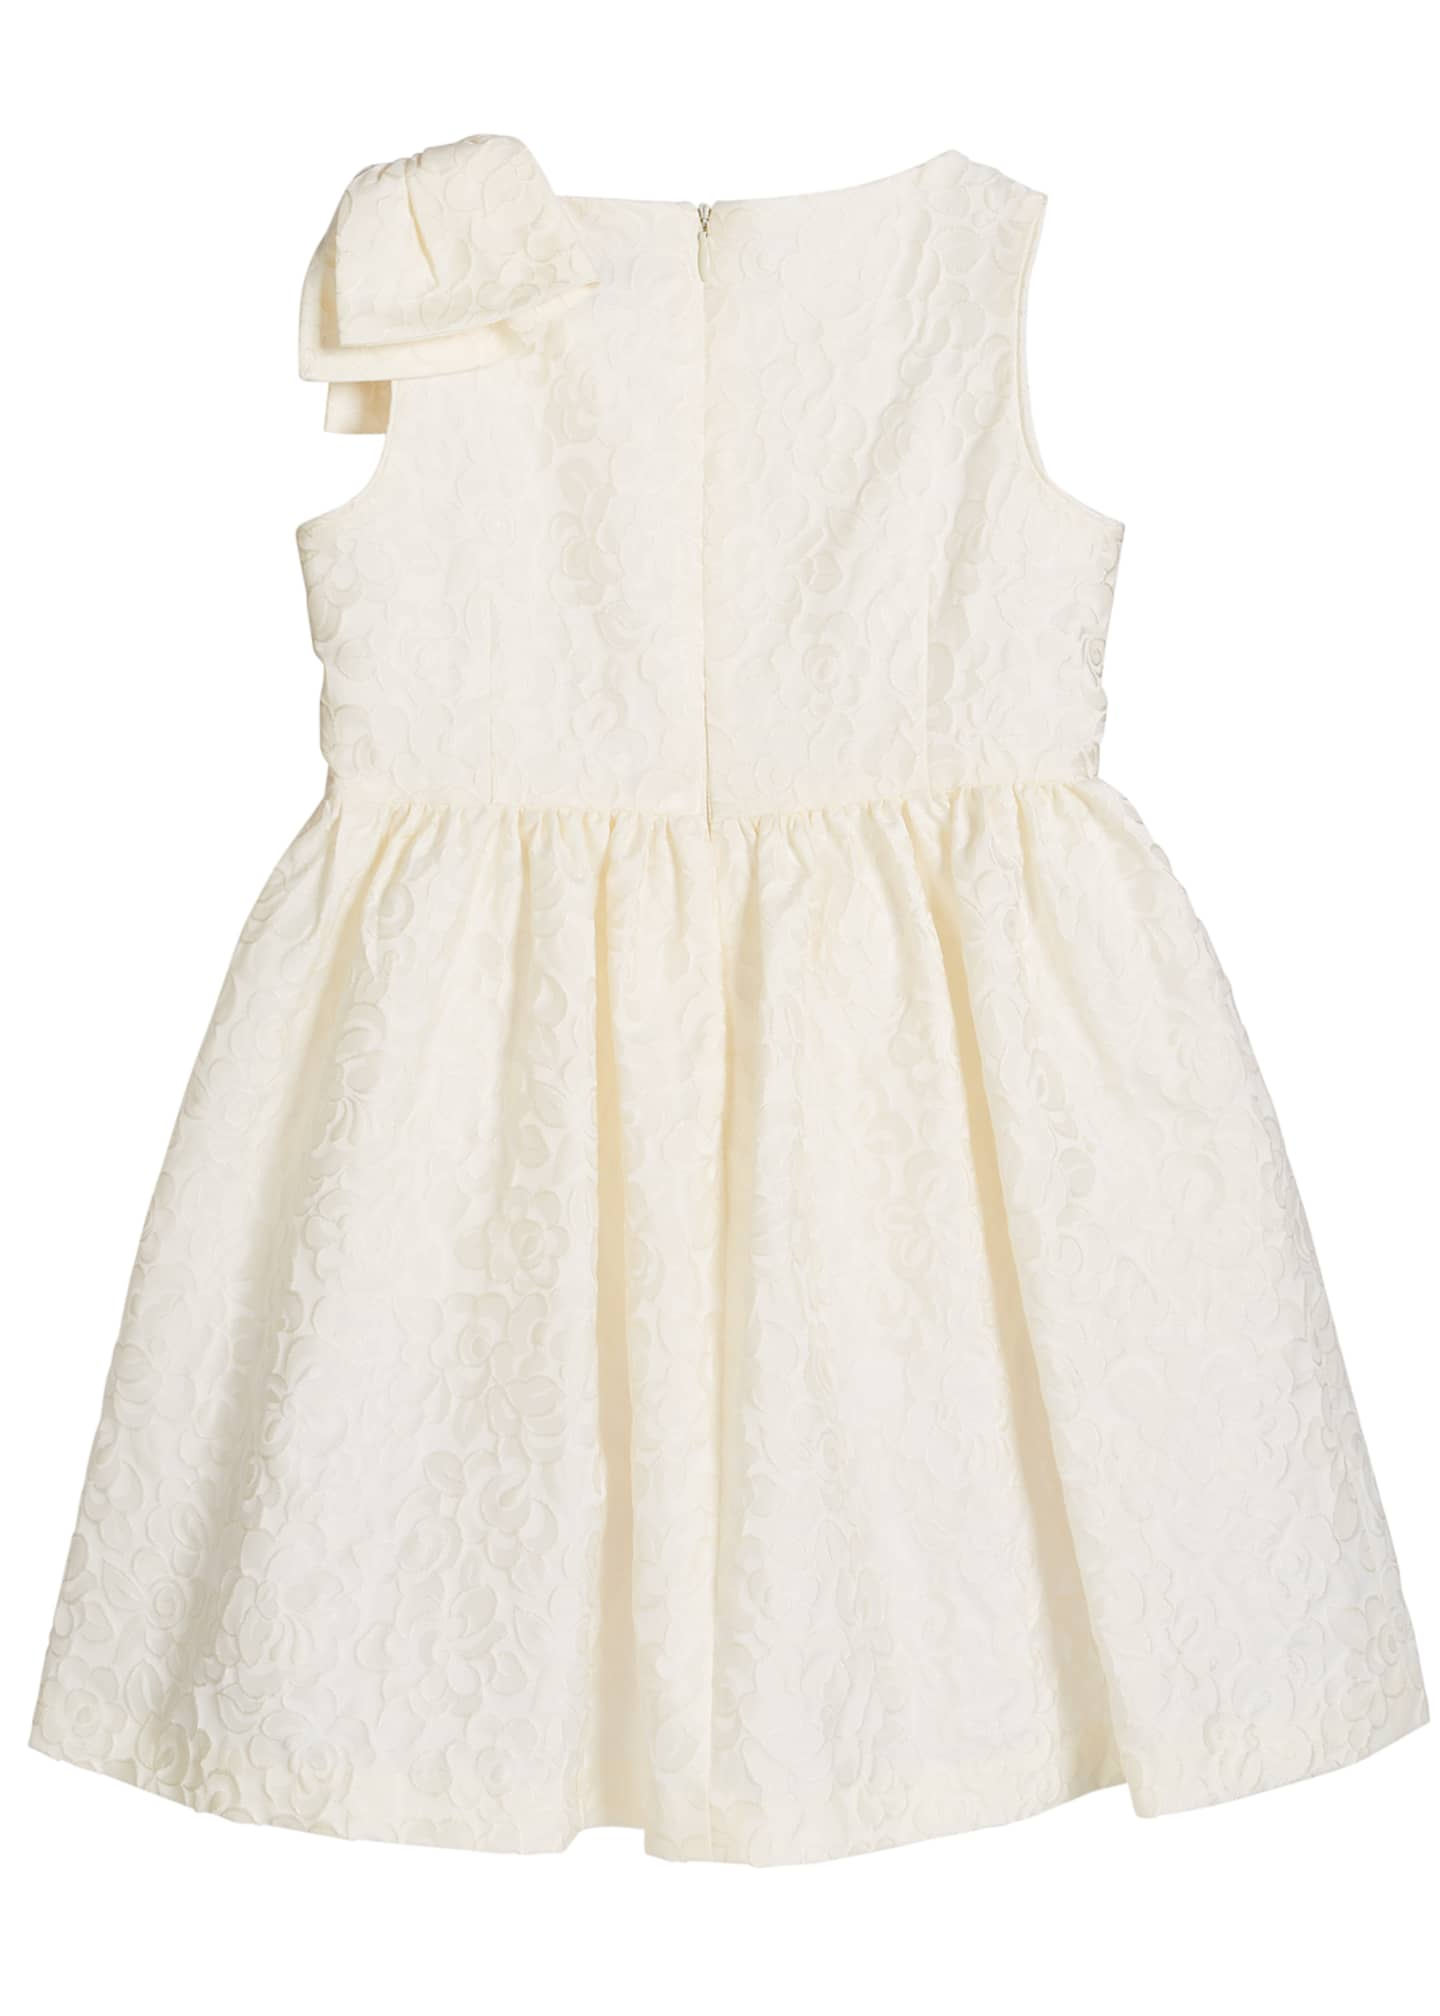 Image 2 of 2: Girl's Ivory Dress with Bow Shoulder, Size 5-6X